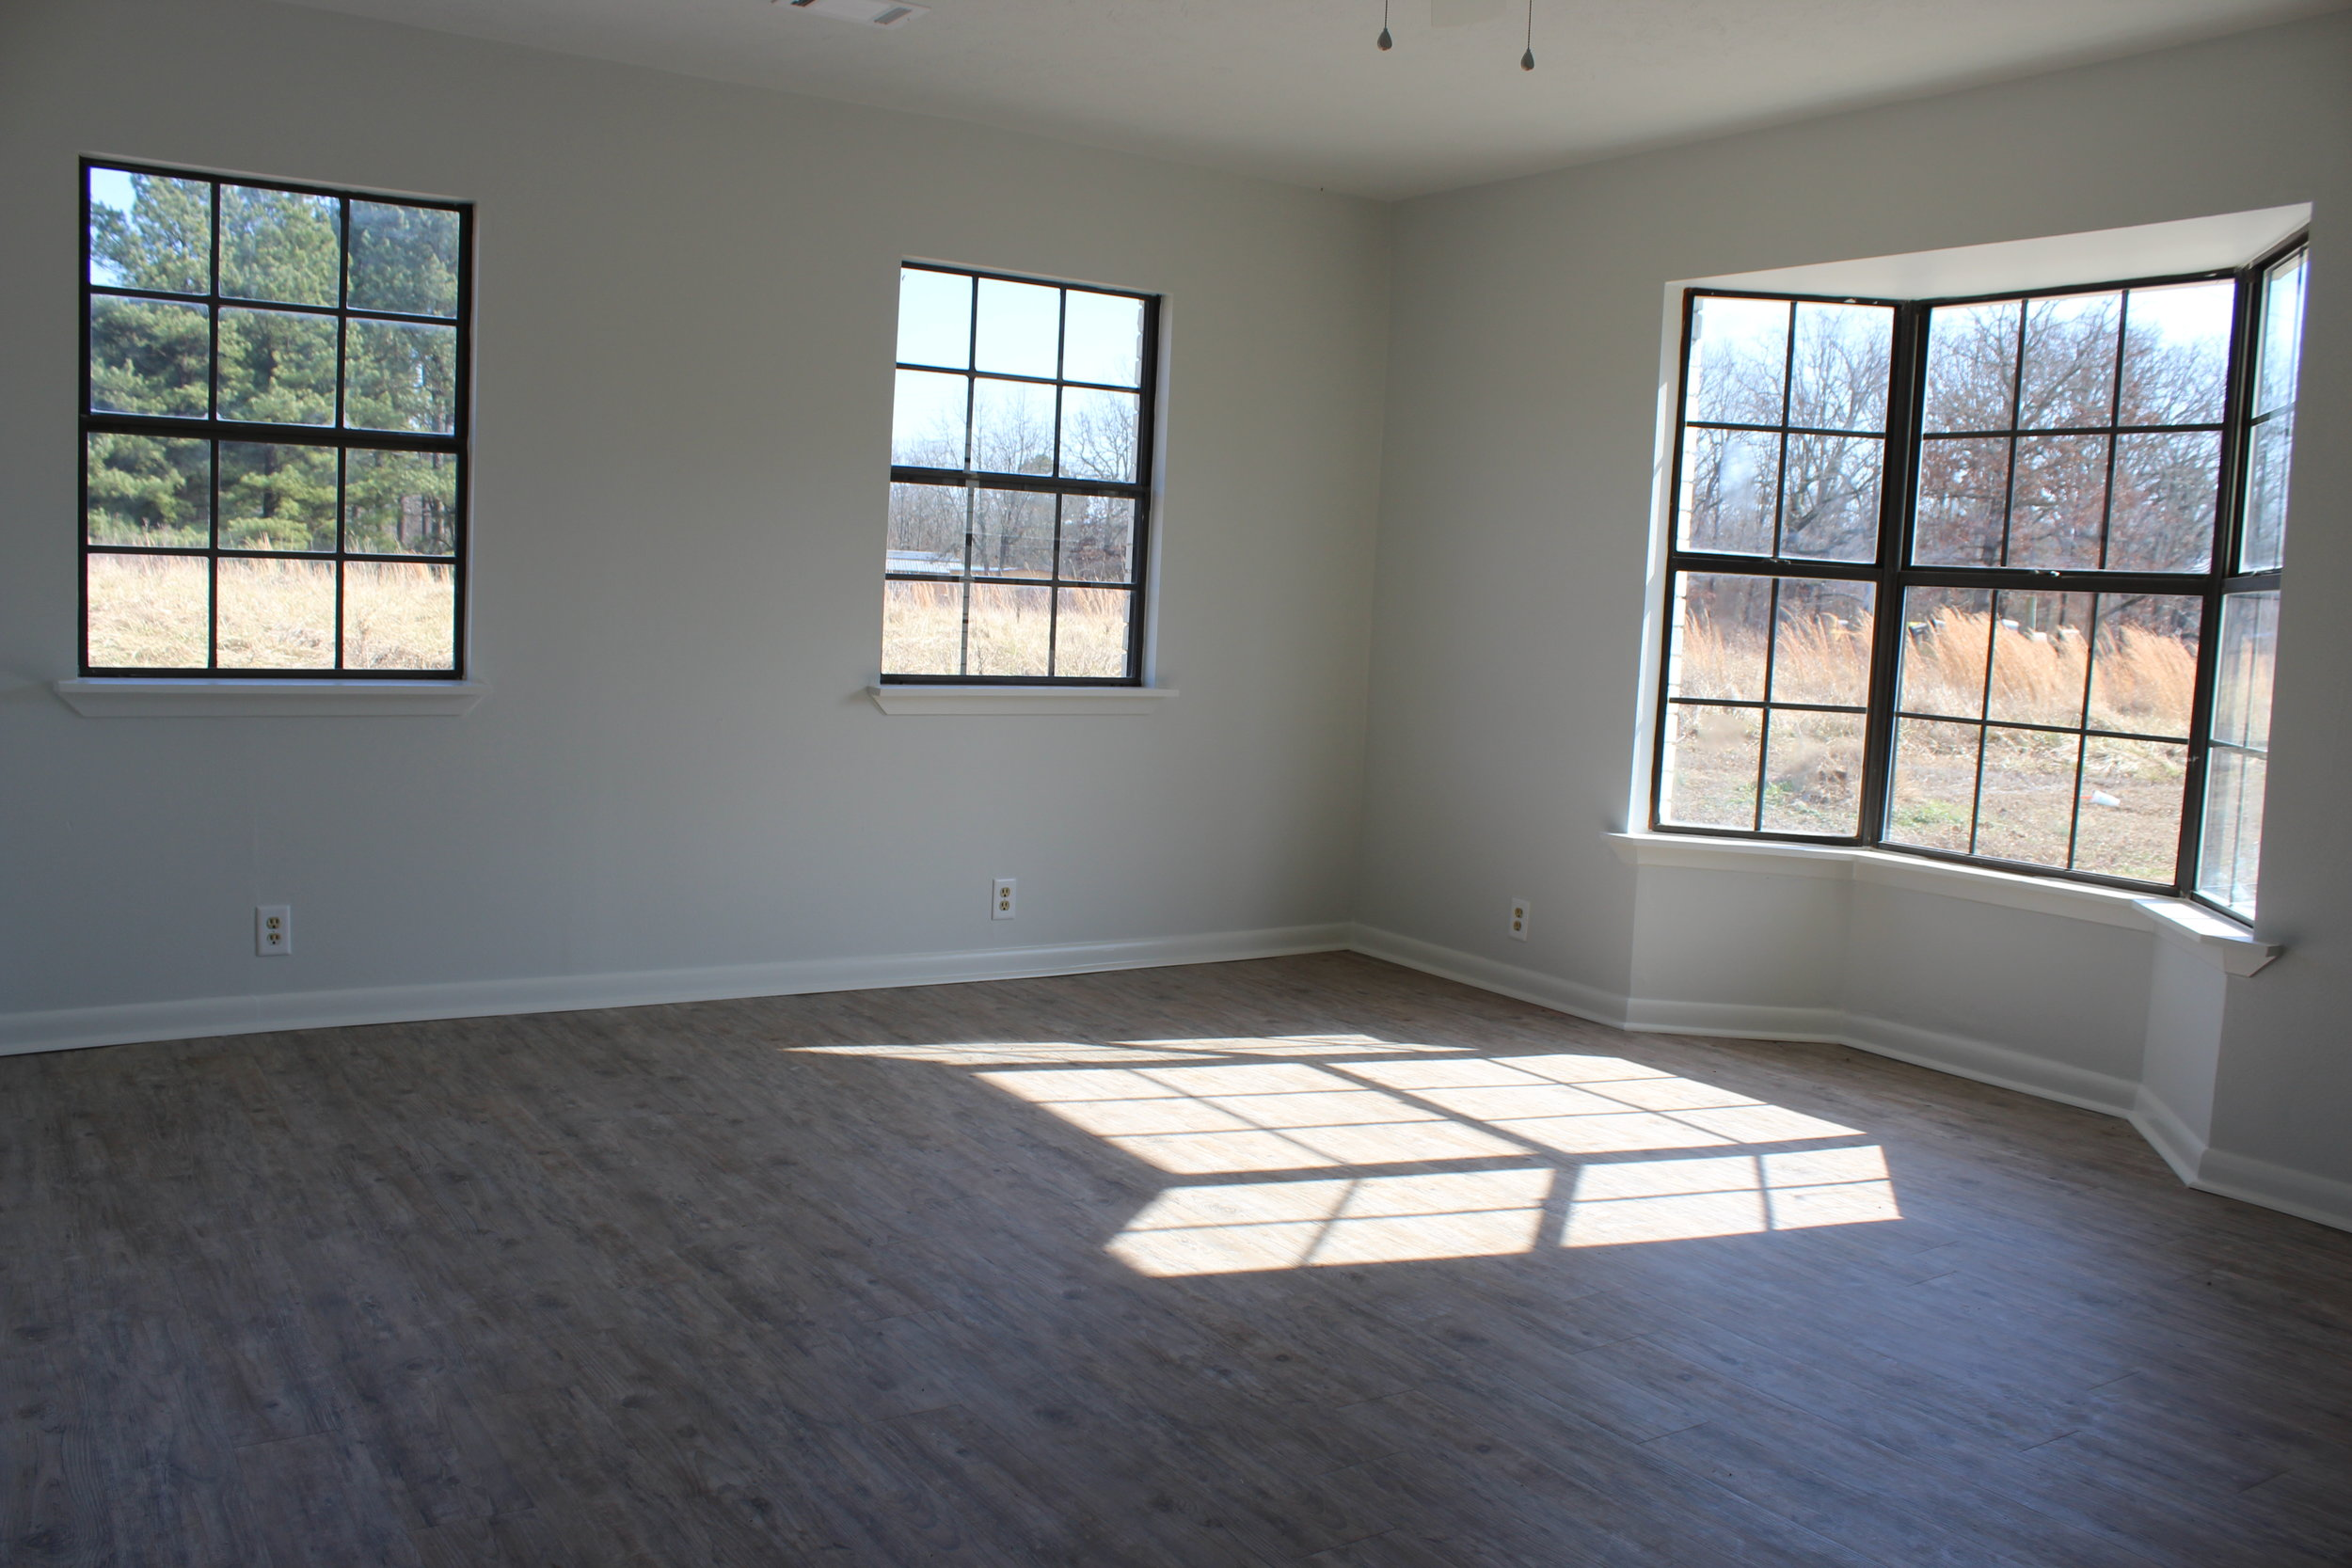 renovation_flip_house_after_picture_southern_arkansas_dining_room.JPG